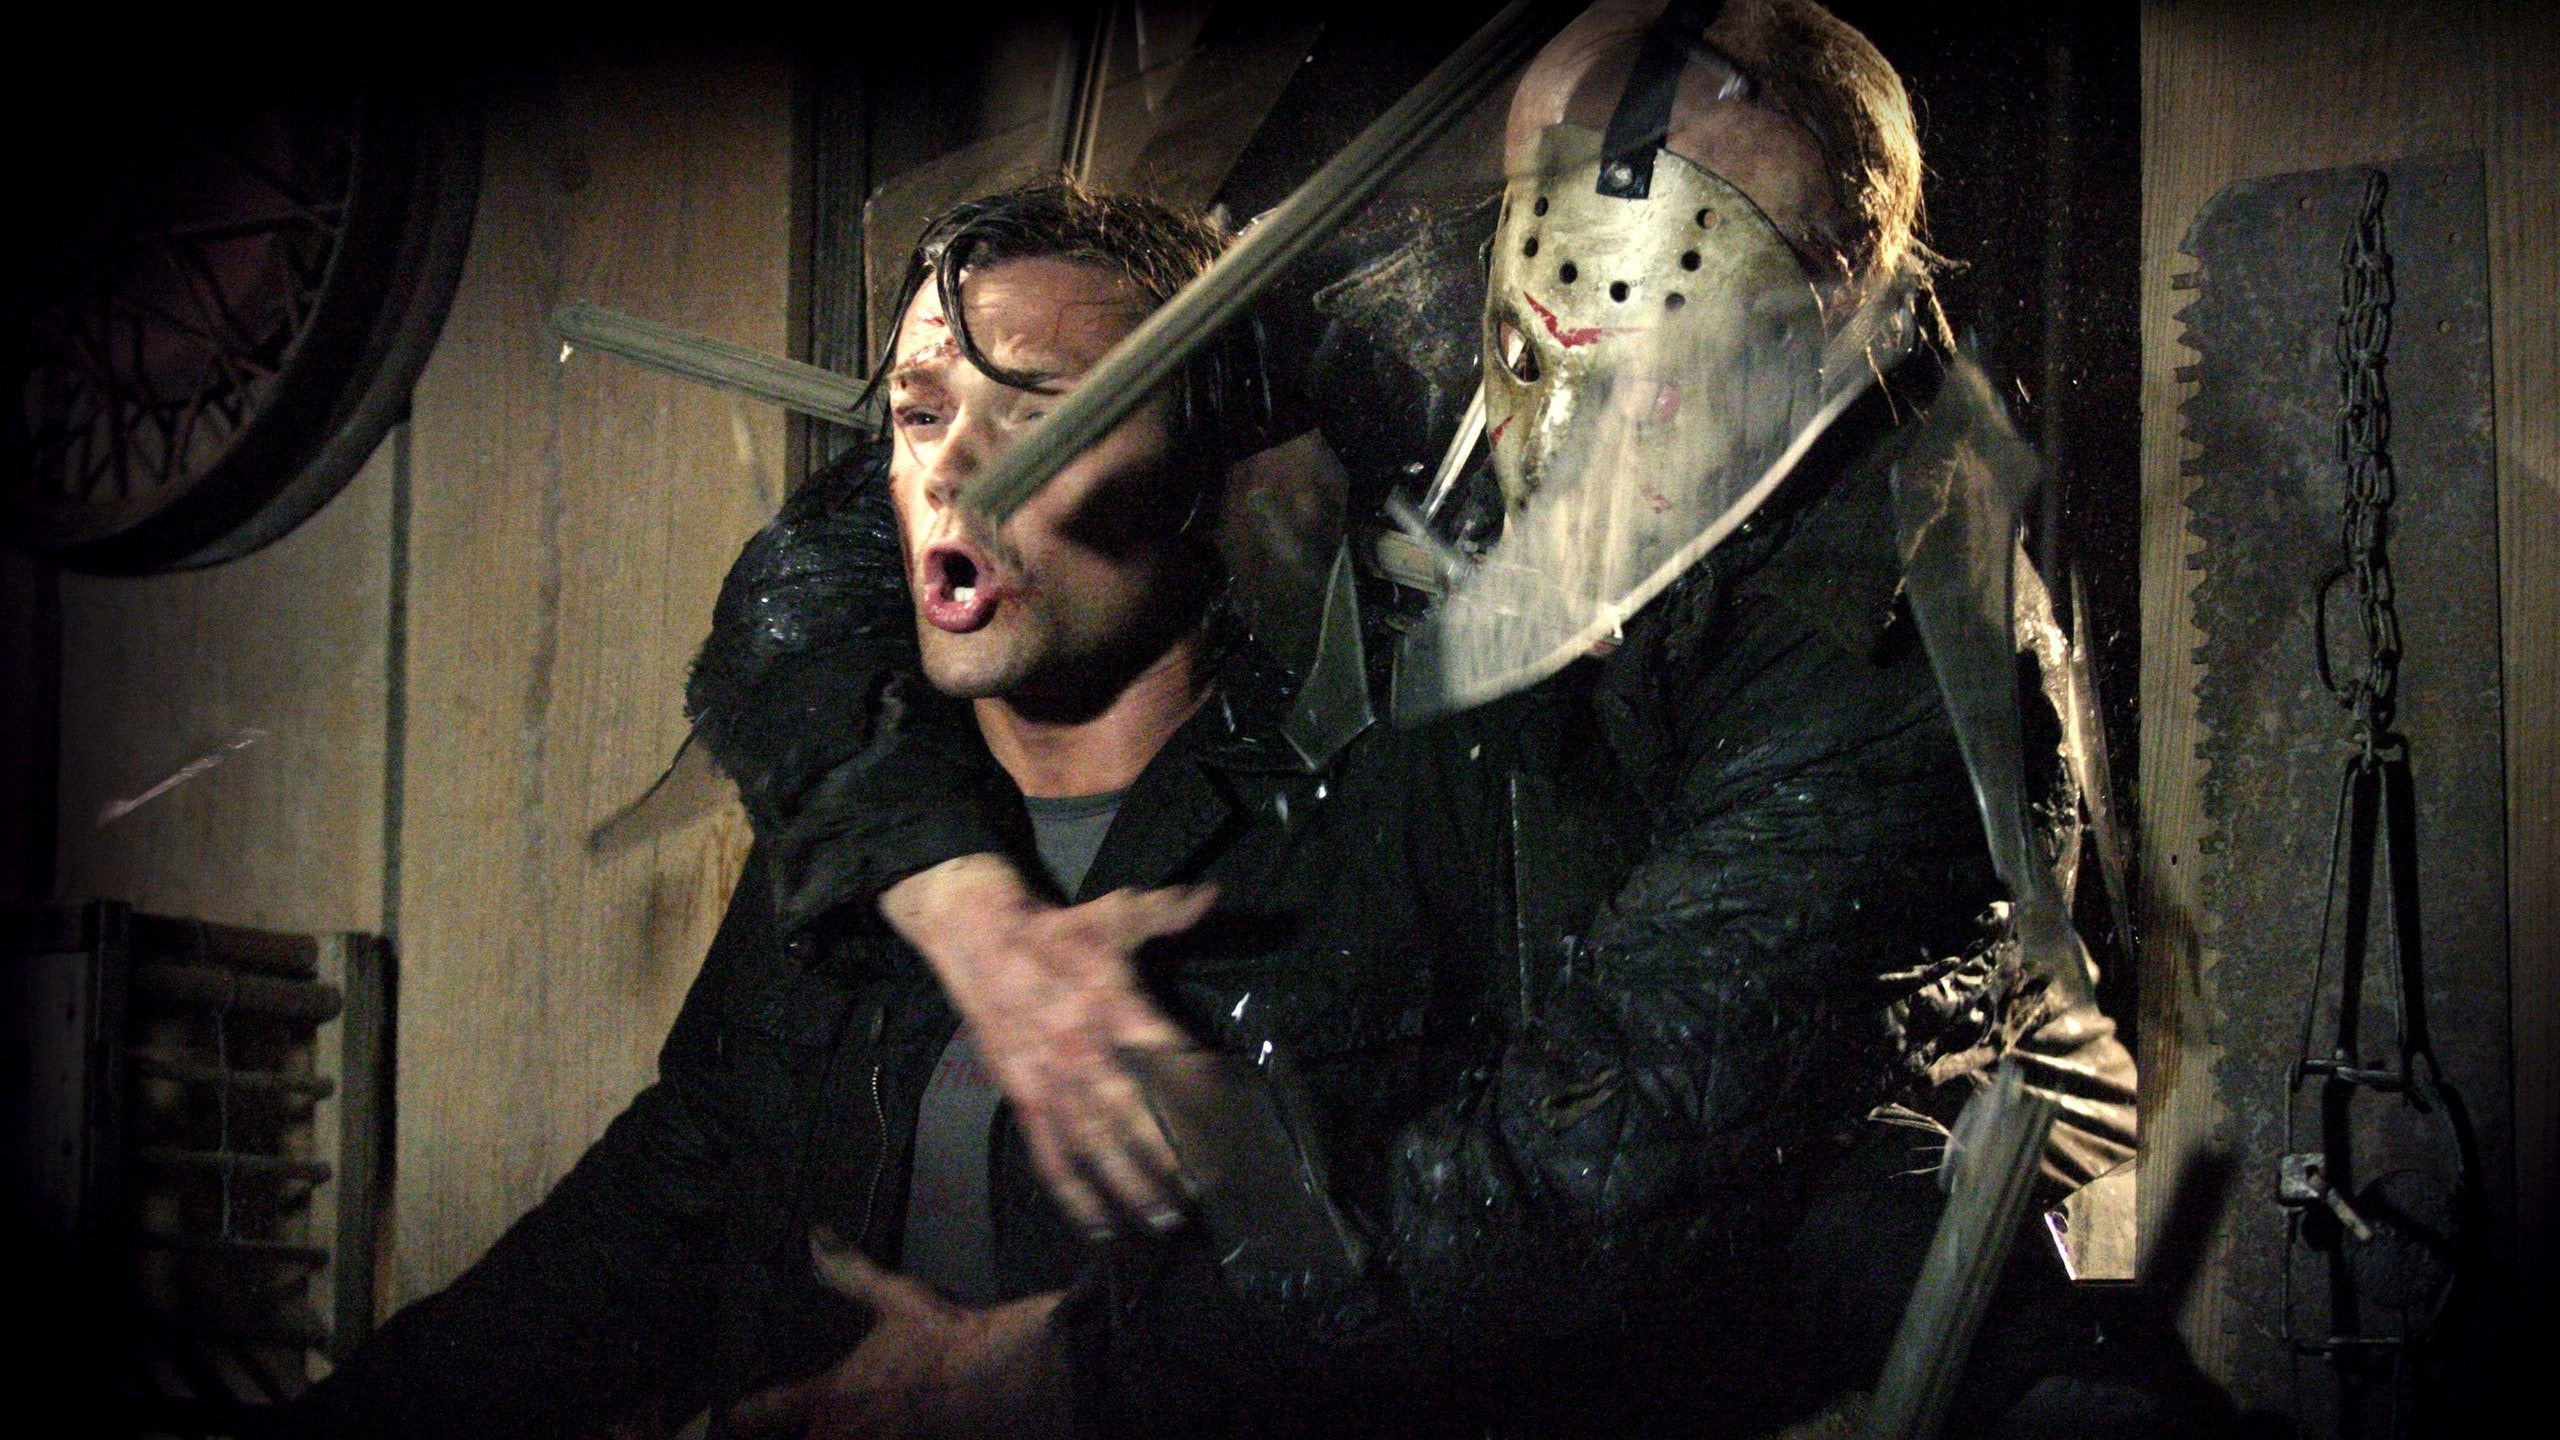 How 2009's Friday the 13th Attempted (as well as Stopped Working) to Revitalize Jason Voorhees